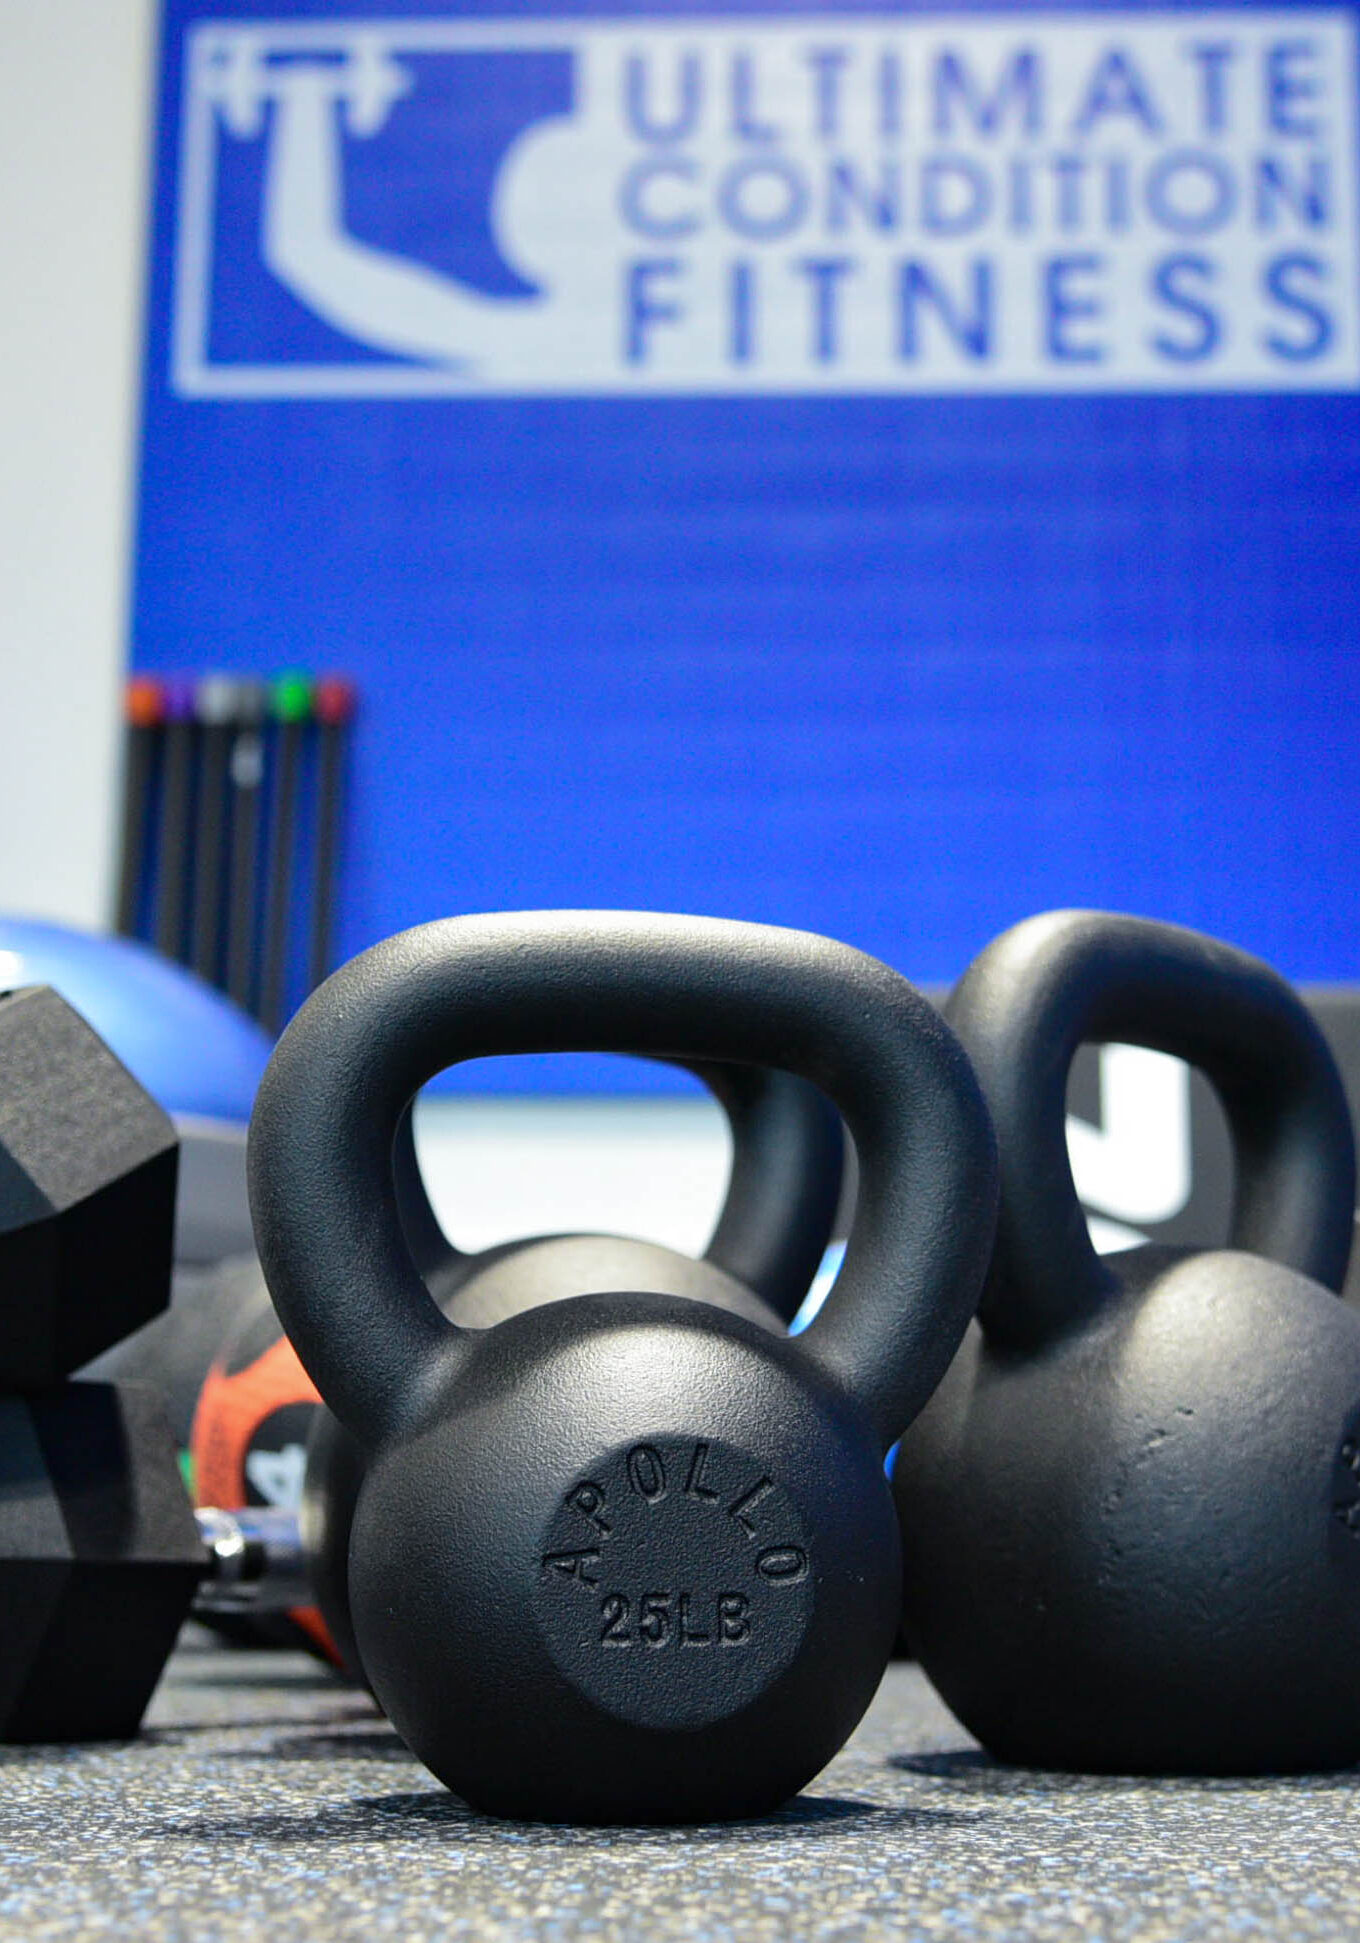 UltimateConditionFitness-Header